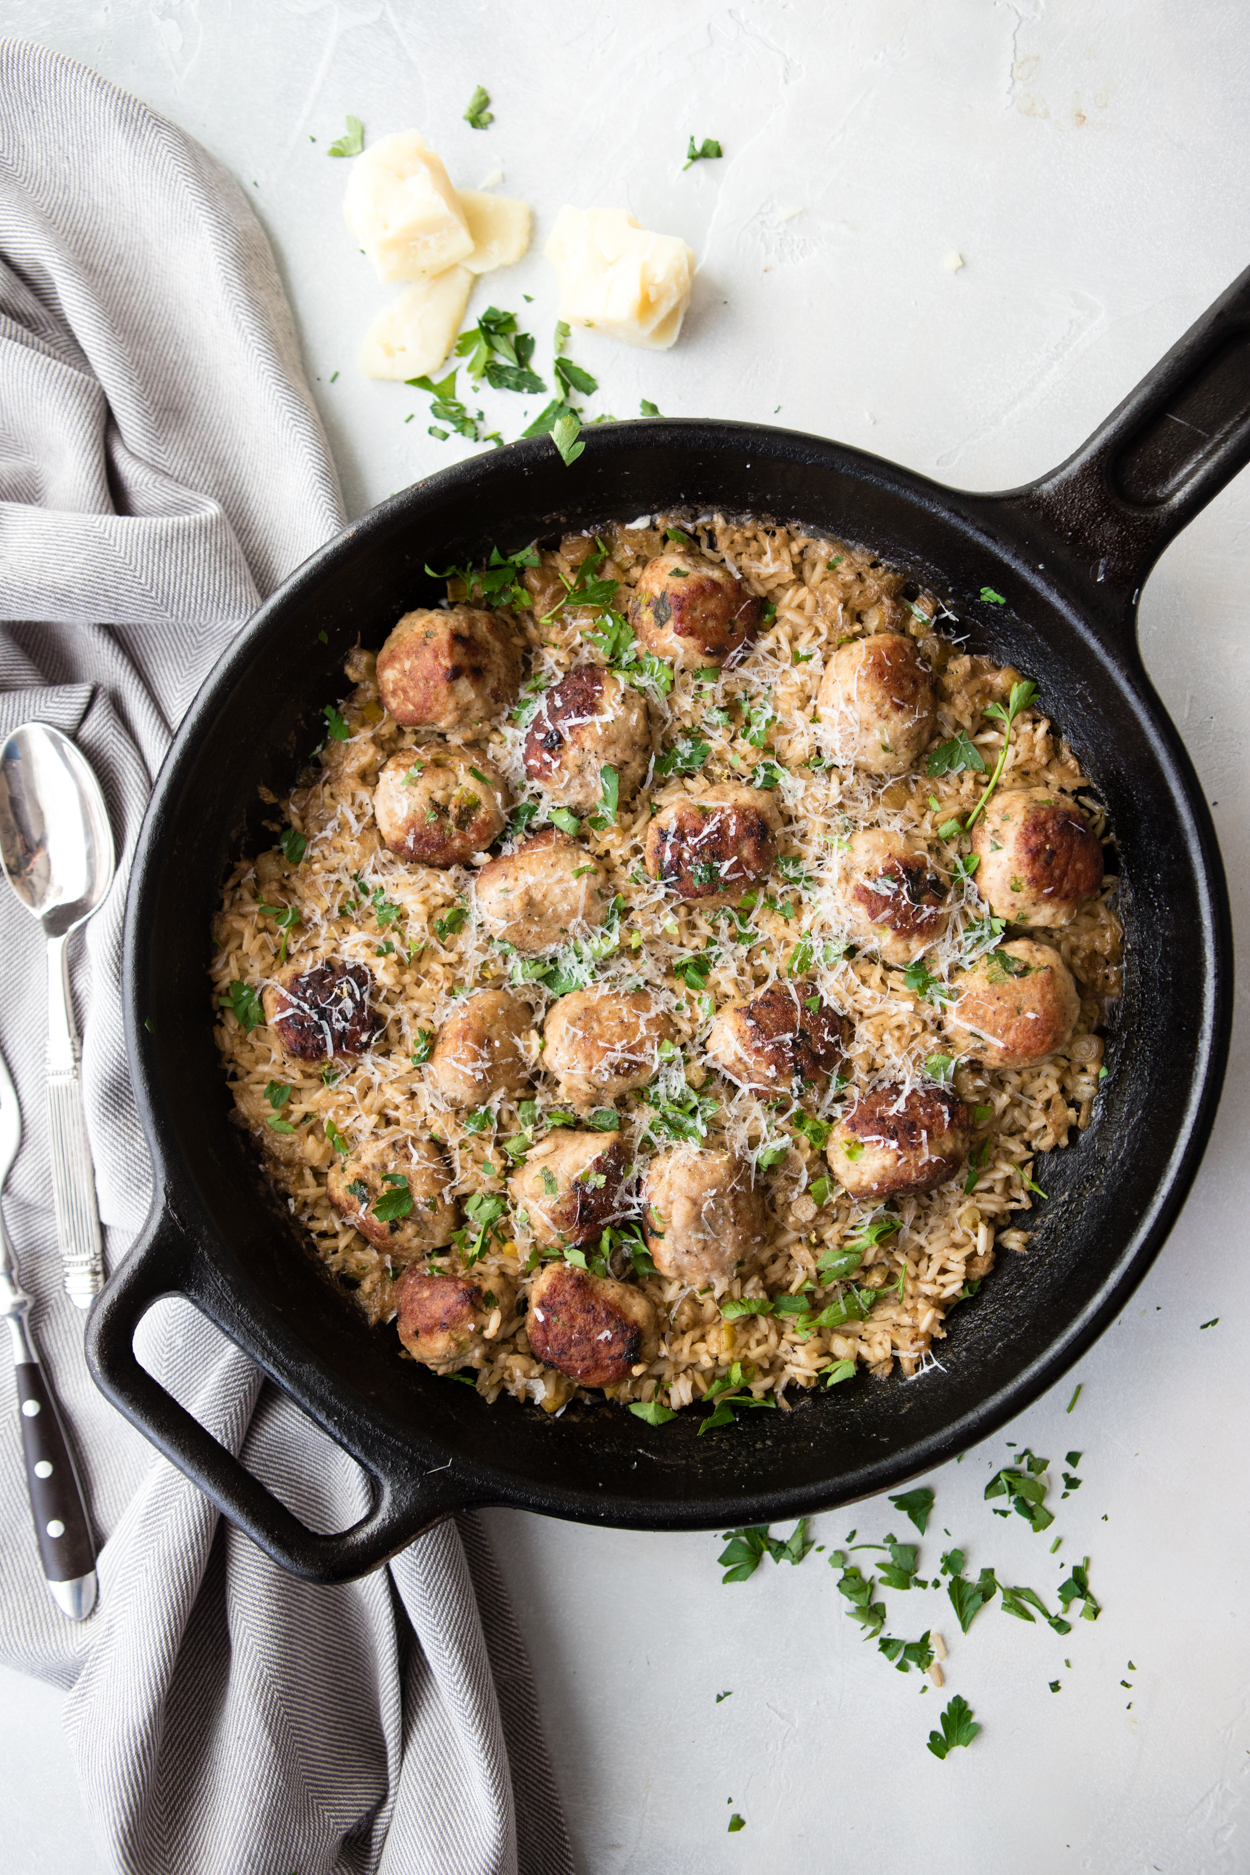 turkey meatballs and rice in a cast iron skillet on a white background